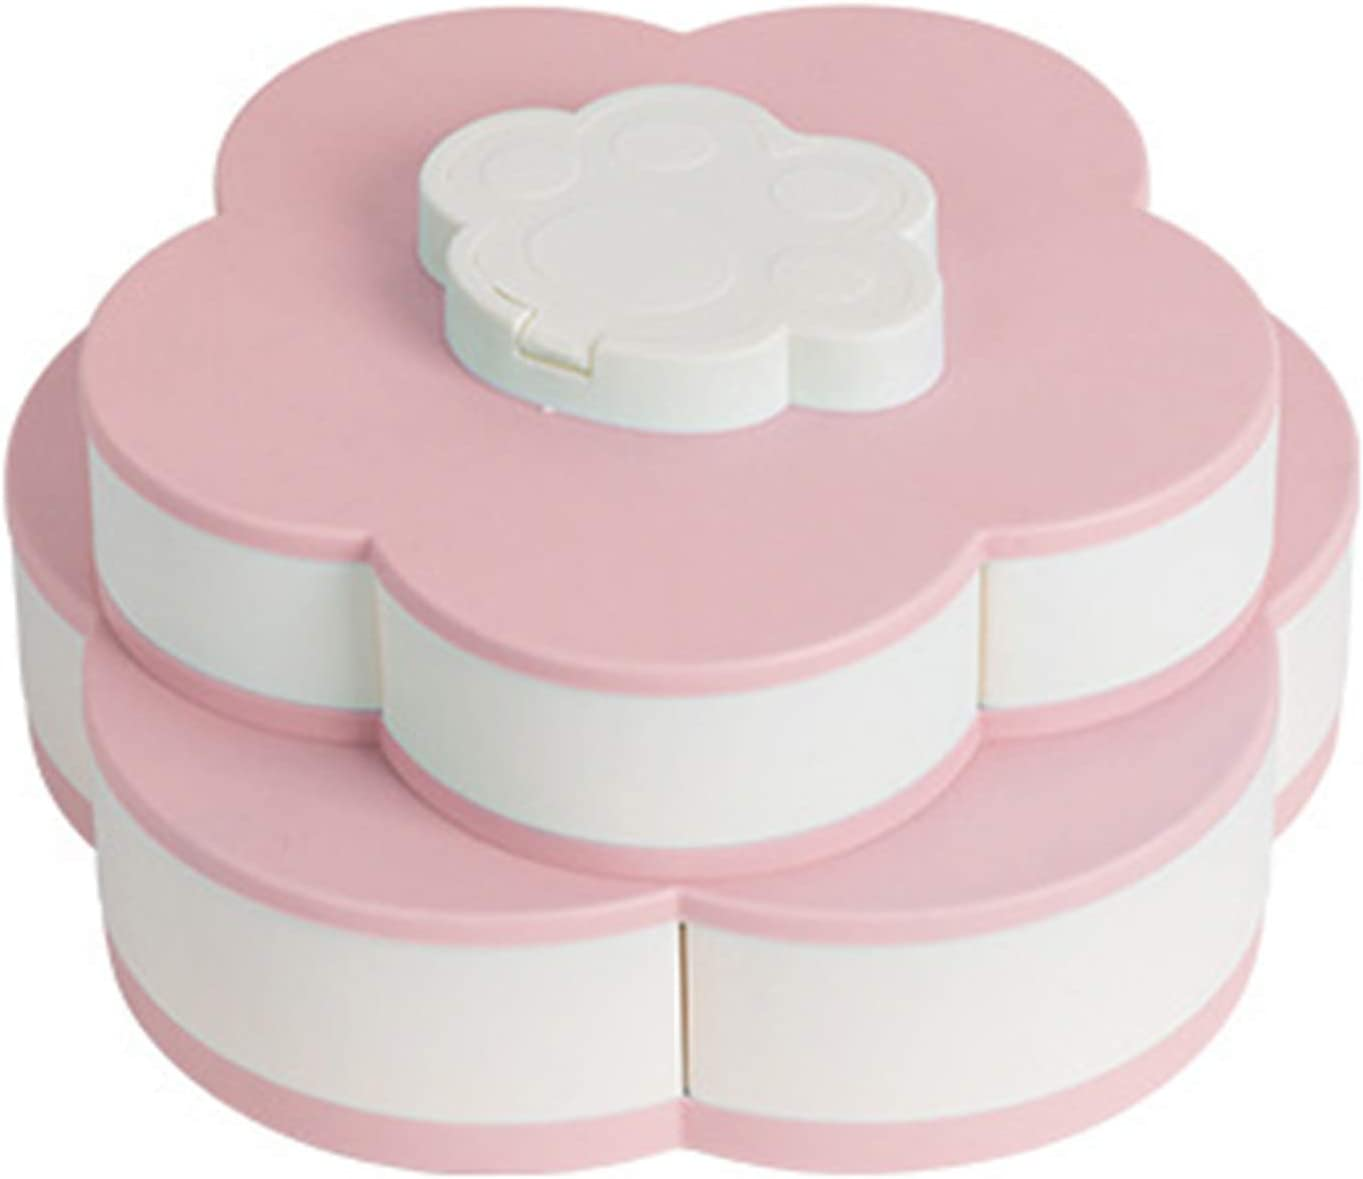 MOORRLII Biscuit Box PP Candy Shape Double-Layered Petal Gifts High quality